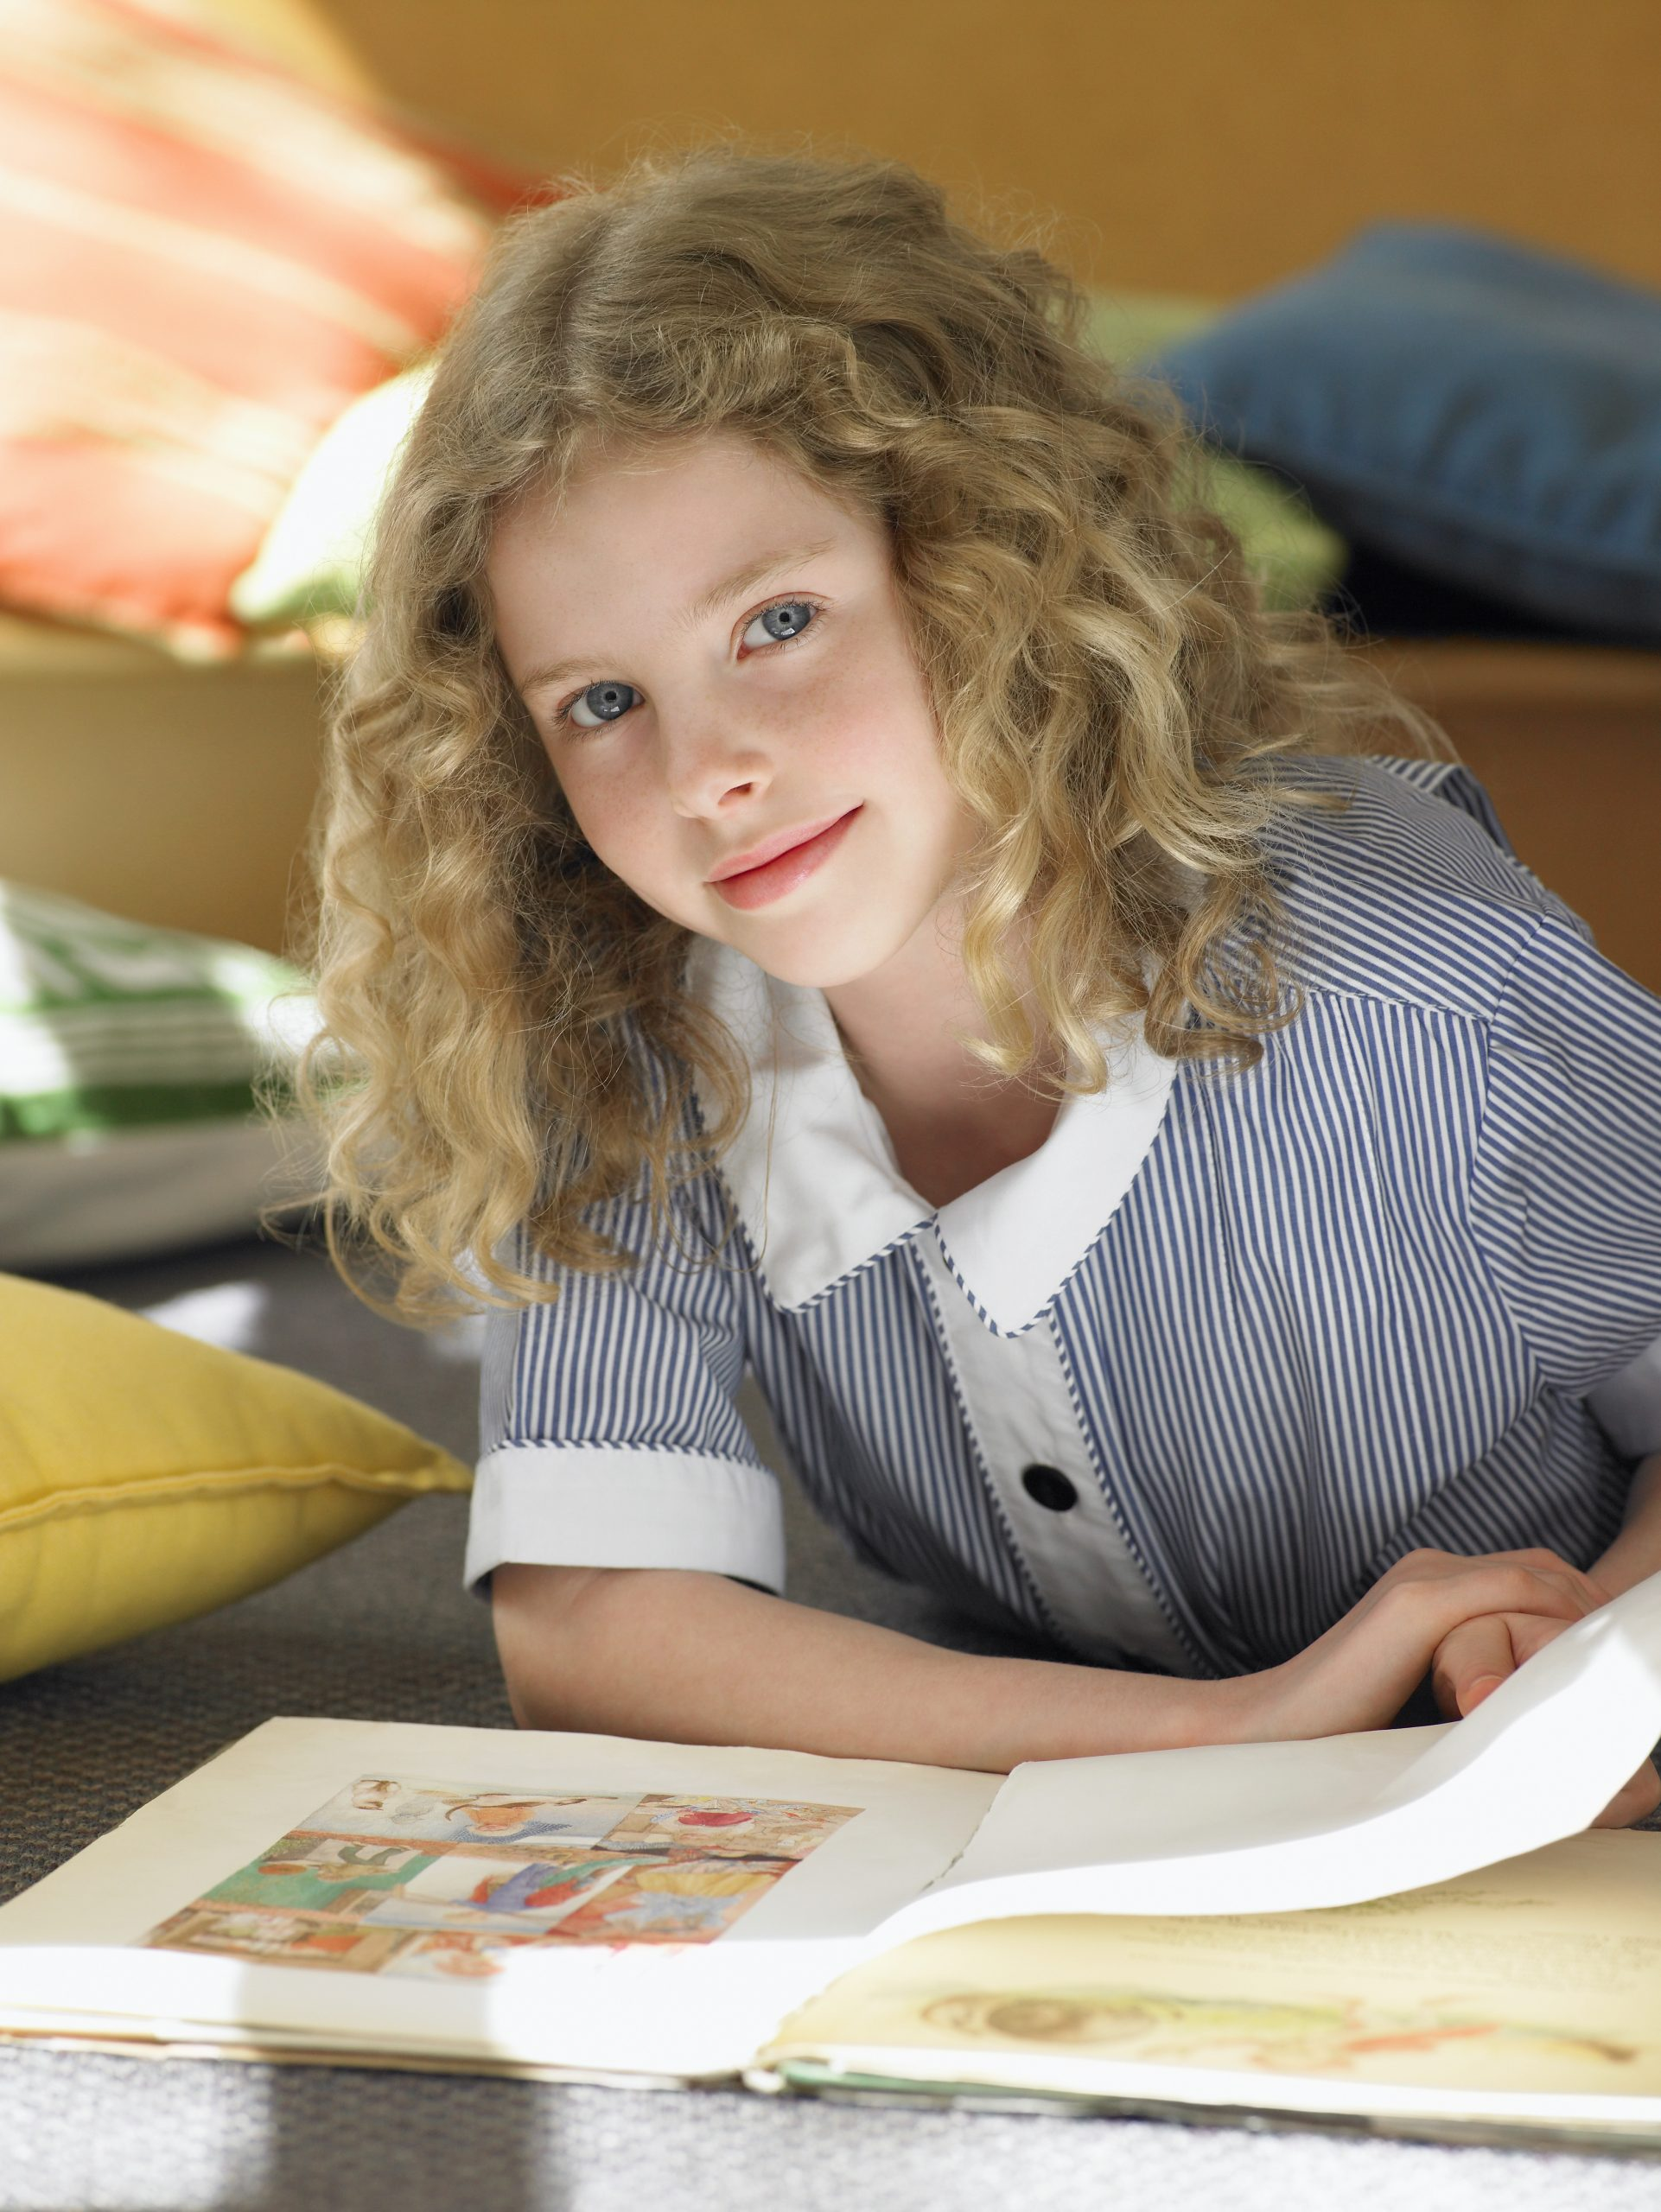 A girl reading 2021 Reading Model for Fluency Comprehension Self Regulation and Vocabulary scaled 1